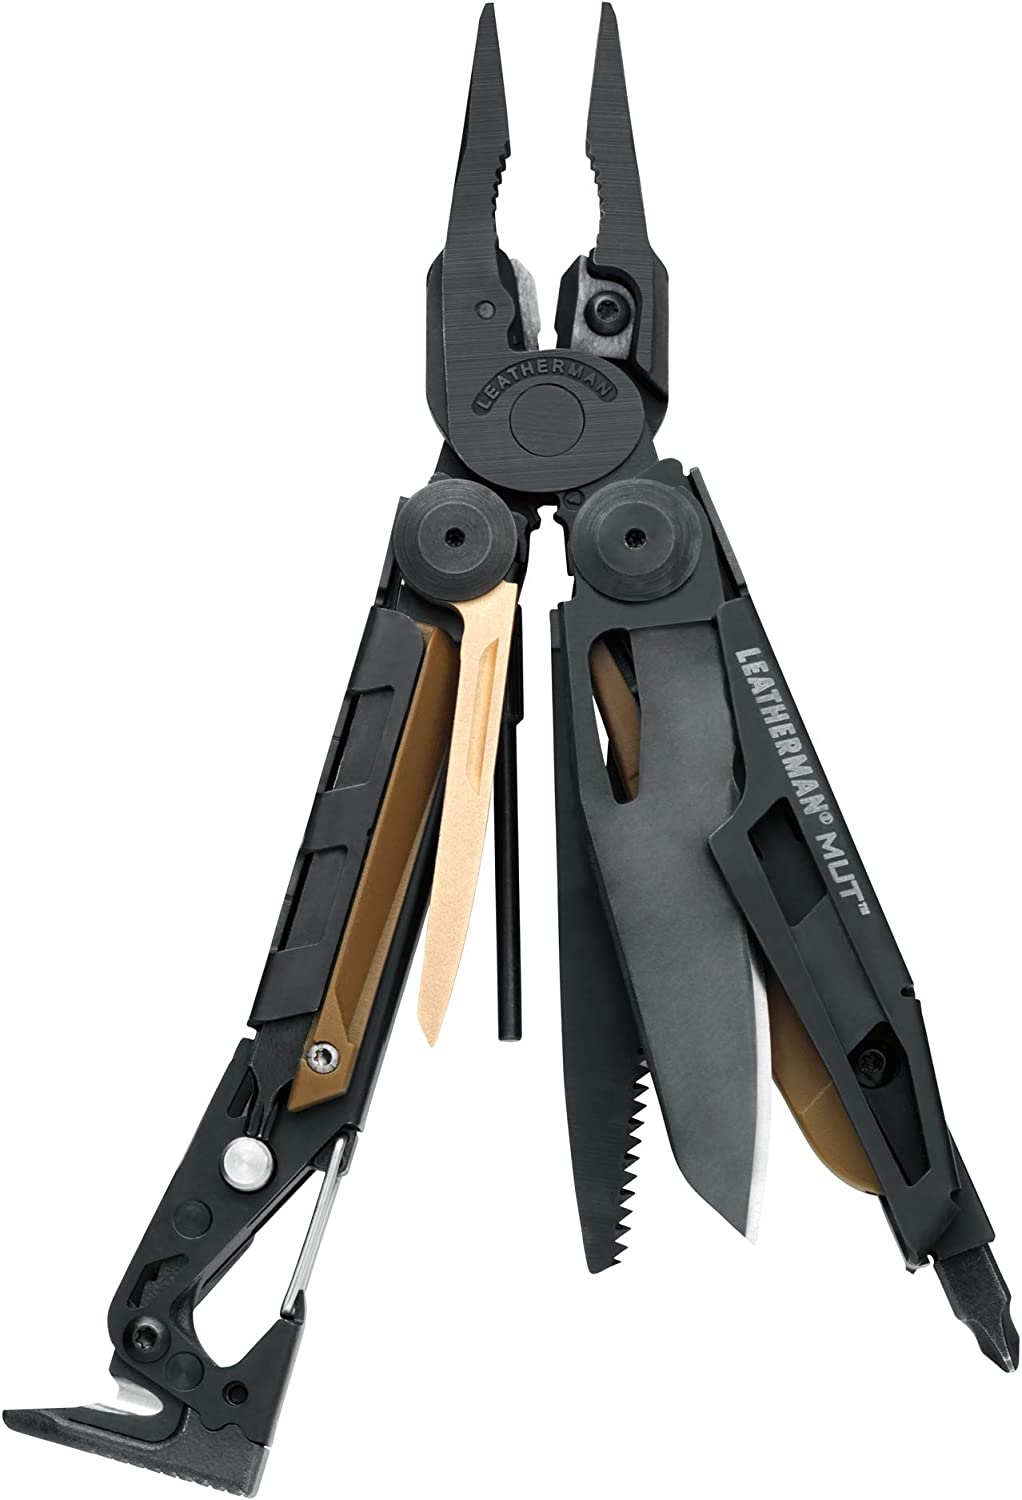 8. Leatherman MUT Multi-Tool